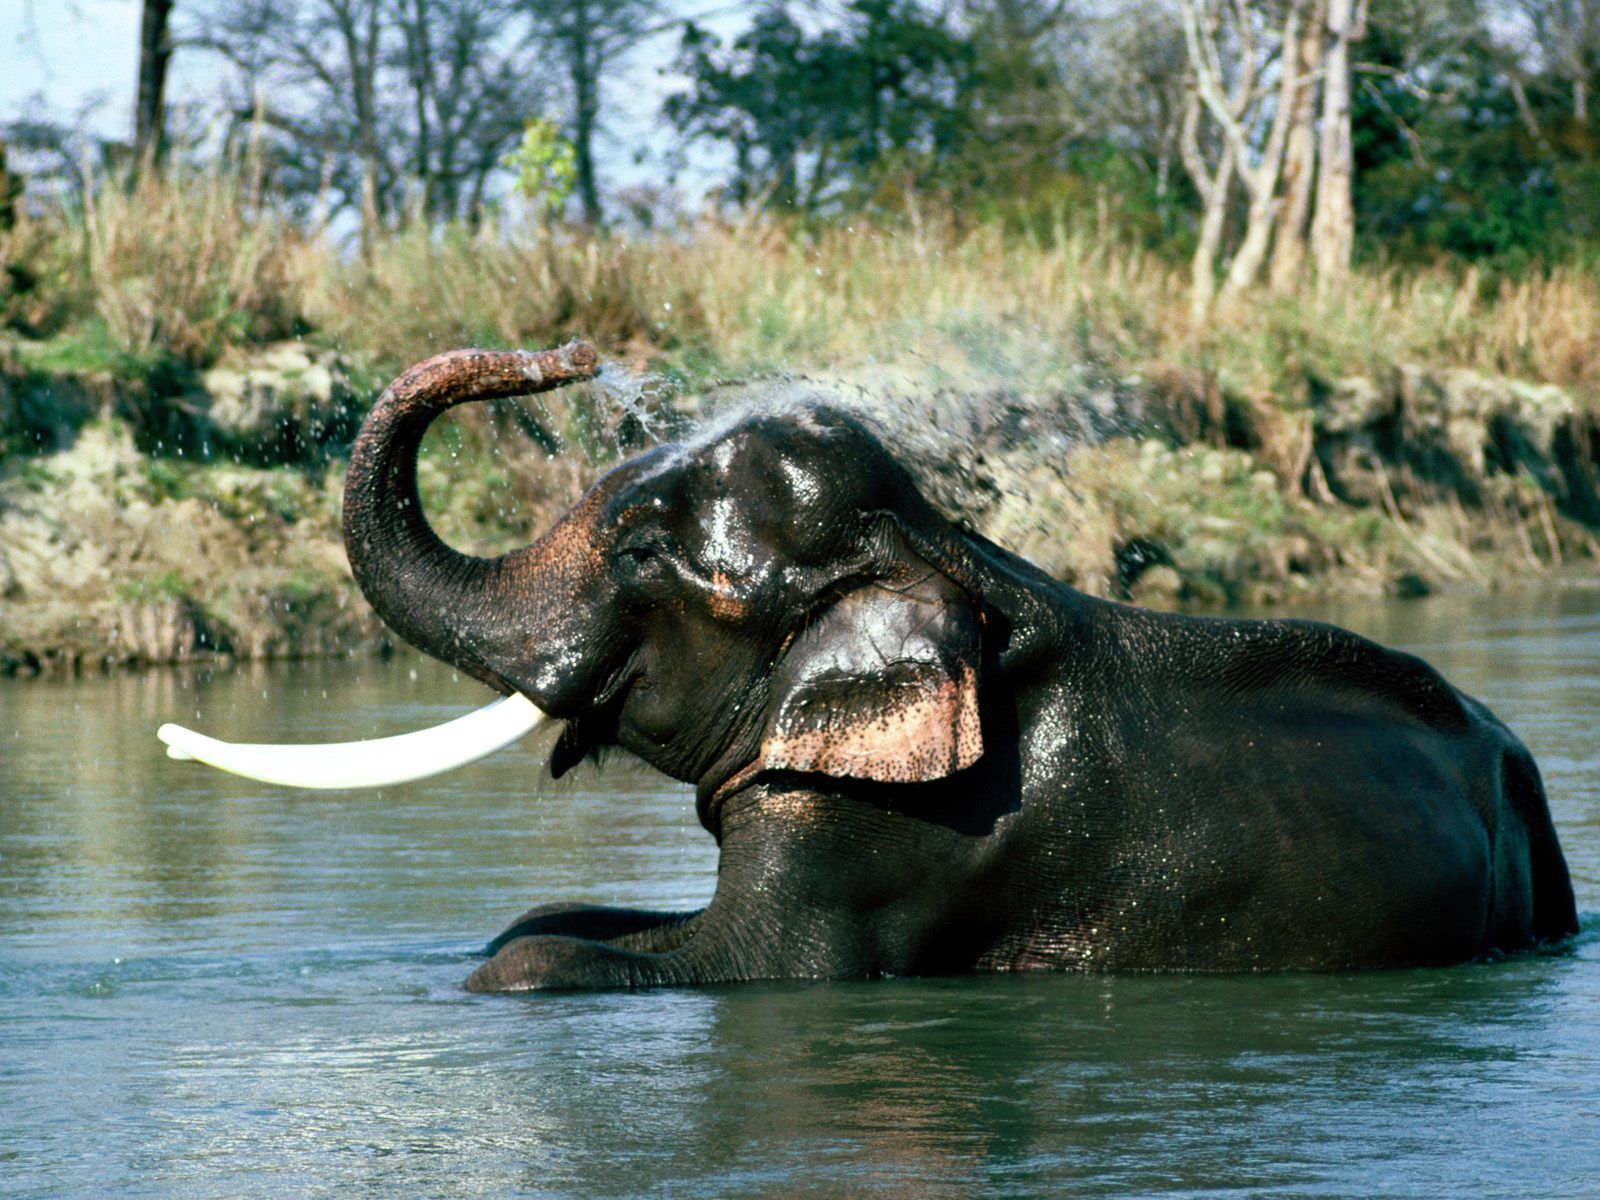 Wallpaper download elephant - Images Of Elephants Indian Elephants High Quality Wallpapers Free Download